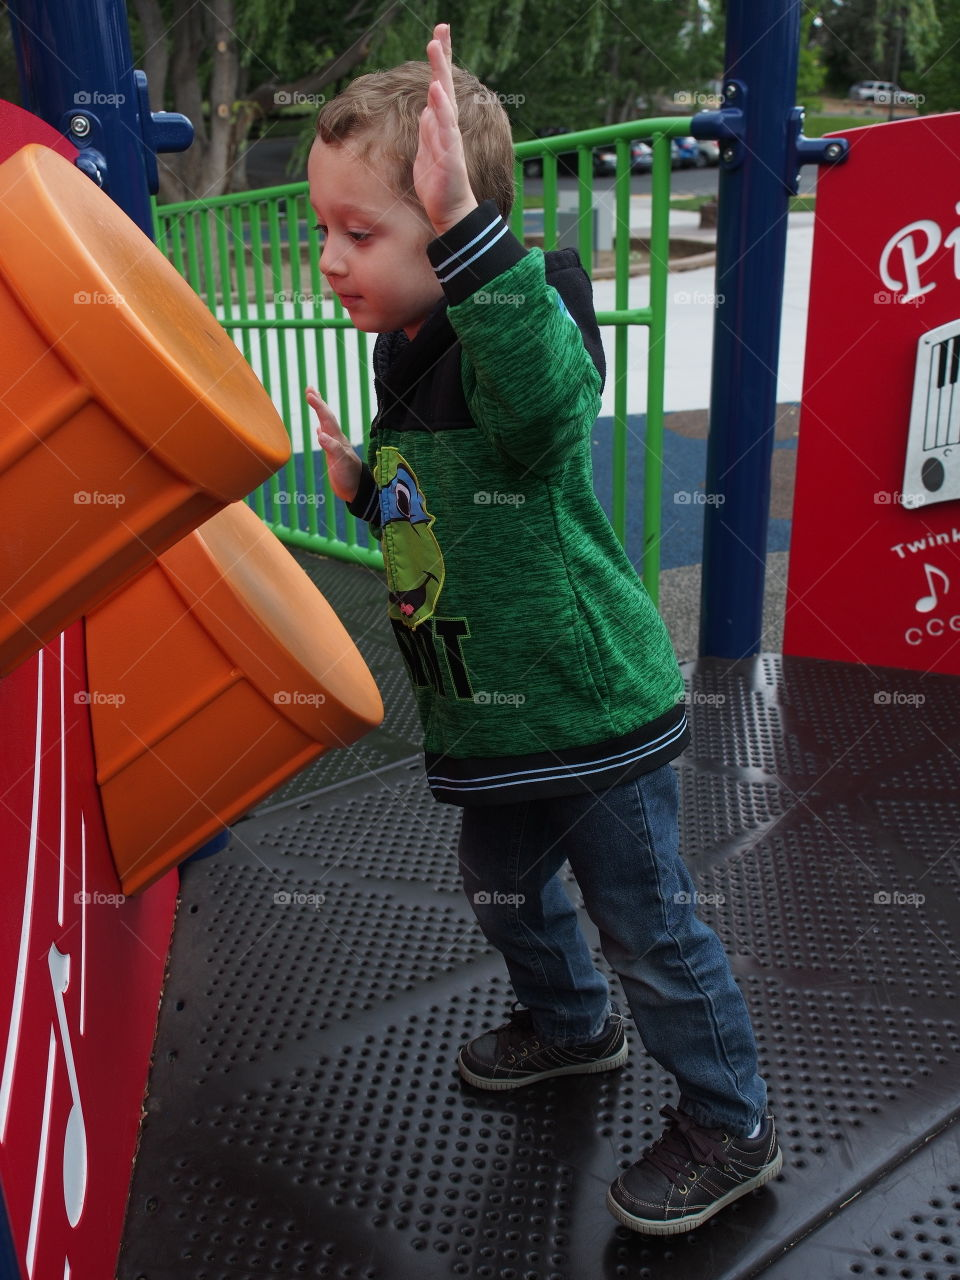 A little boy enthusiastically plays on the plastic drums on a play structure in the park.